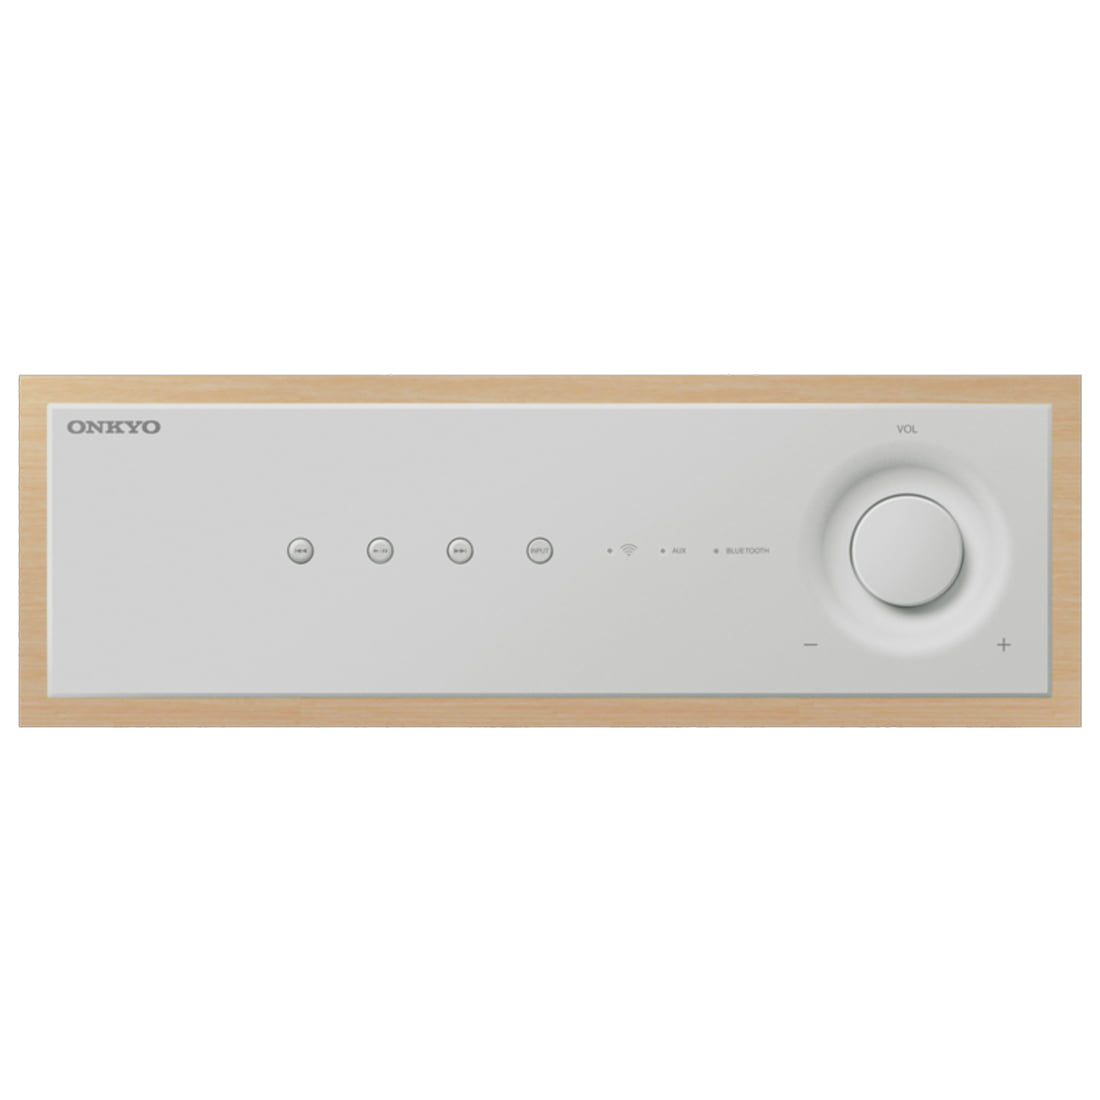 Onkyo NCP-302 White Wireless Audio System With Bluetooth